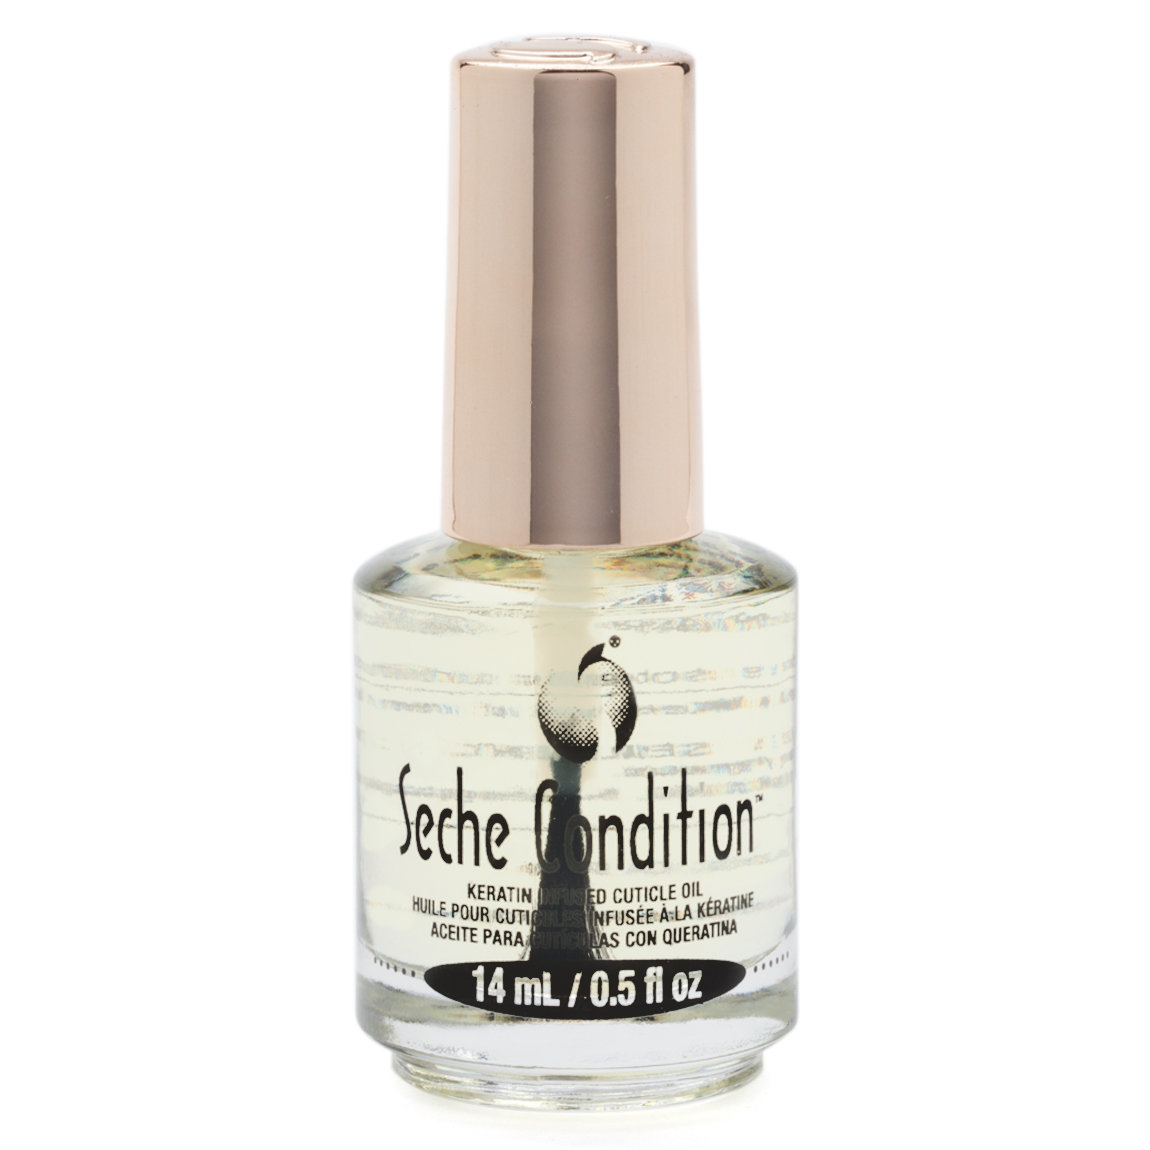 Seche Condition Keratin Infused Cuticle Oil product smear.